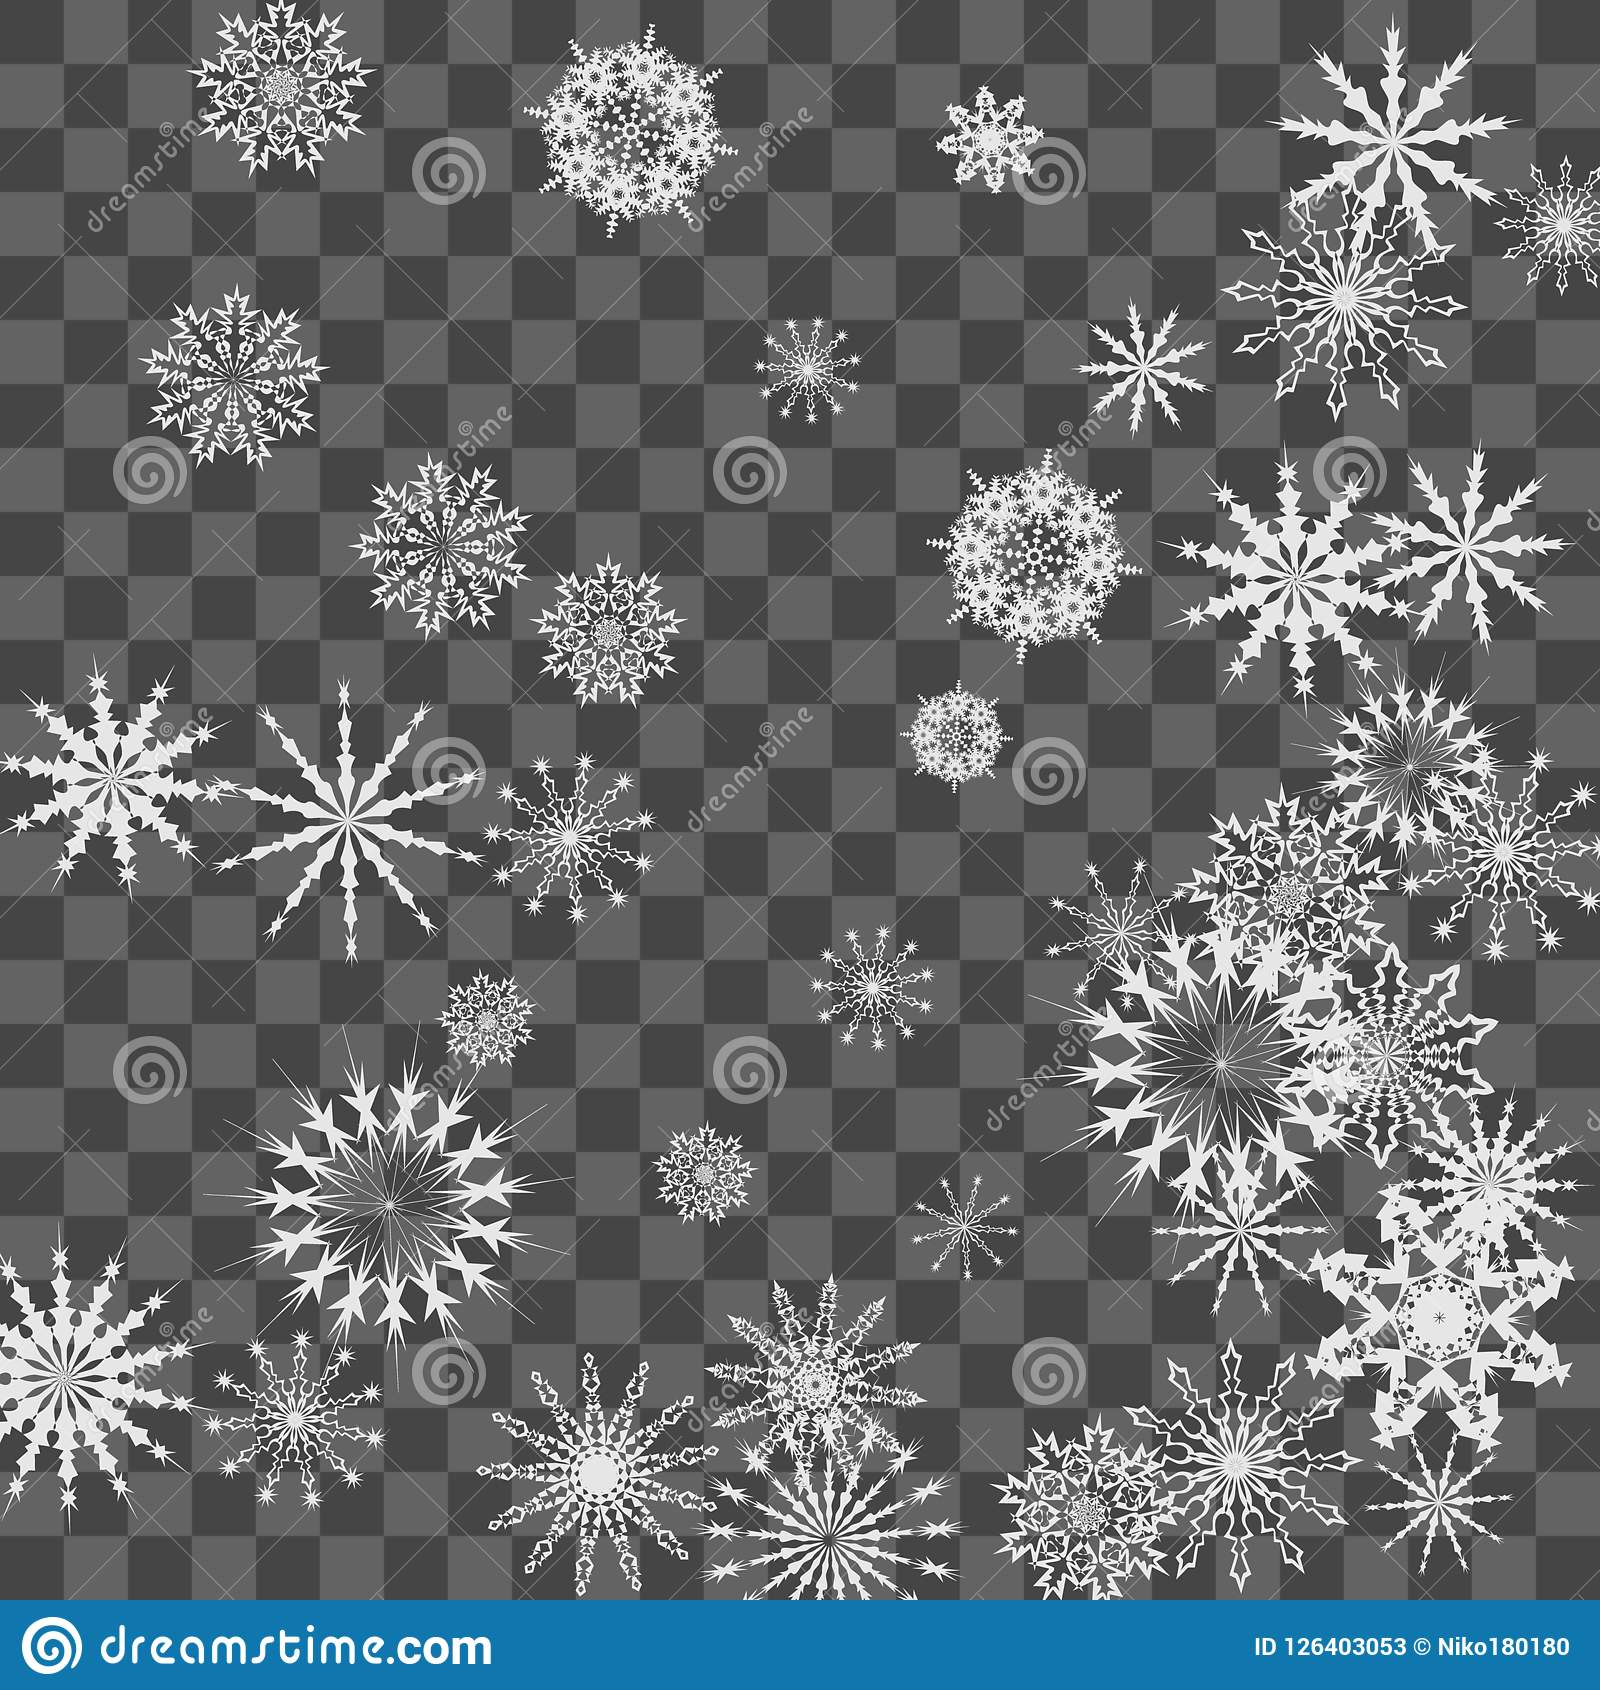 download christmas and new year background with snowflakes stock vector illustration of fashion decoration